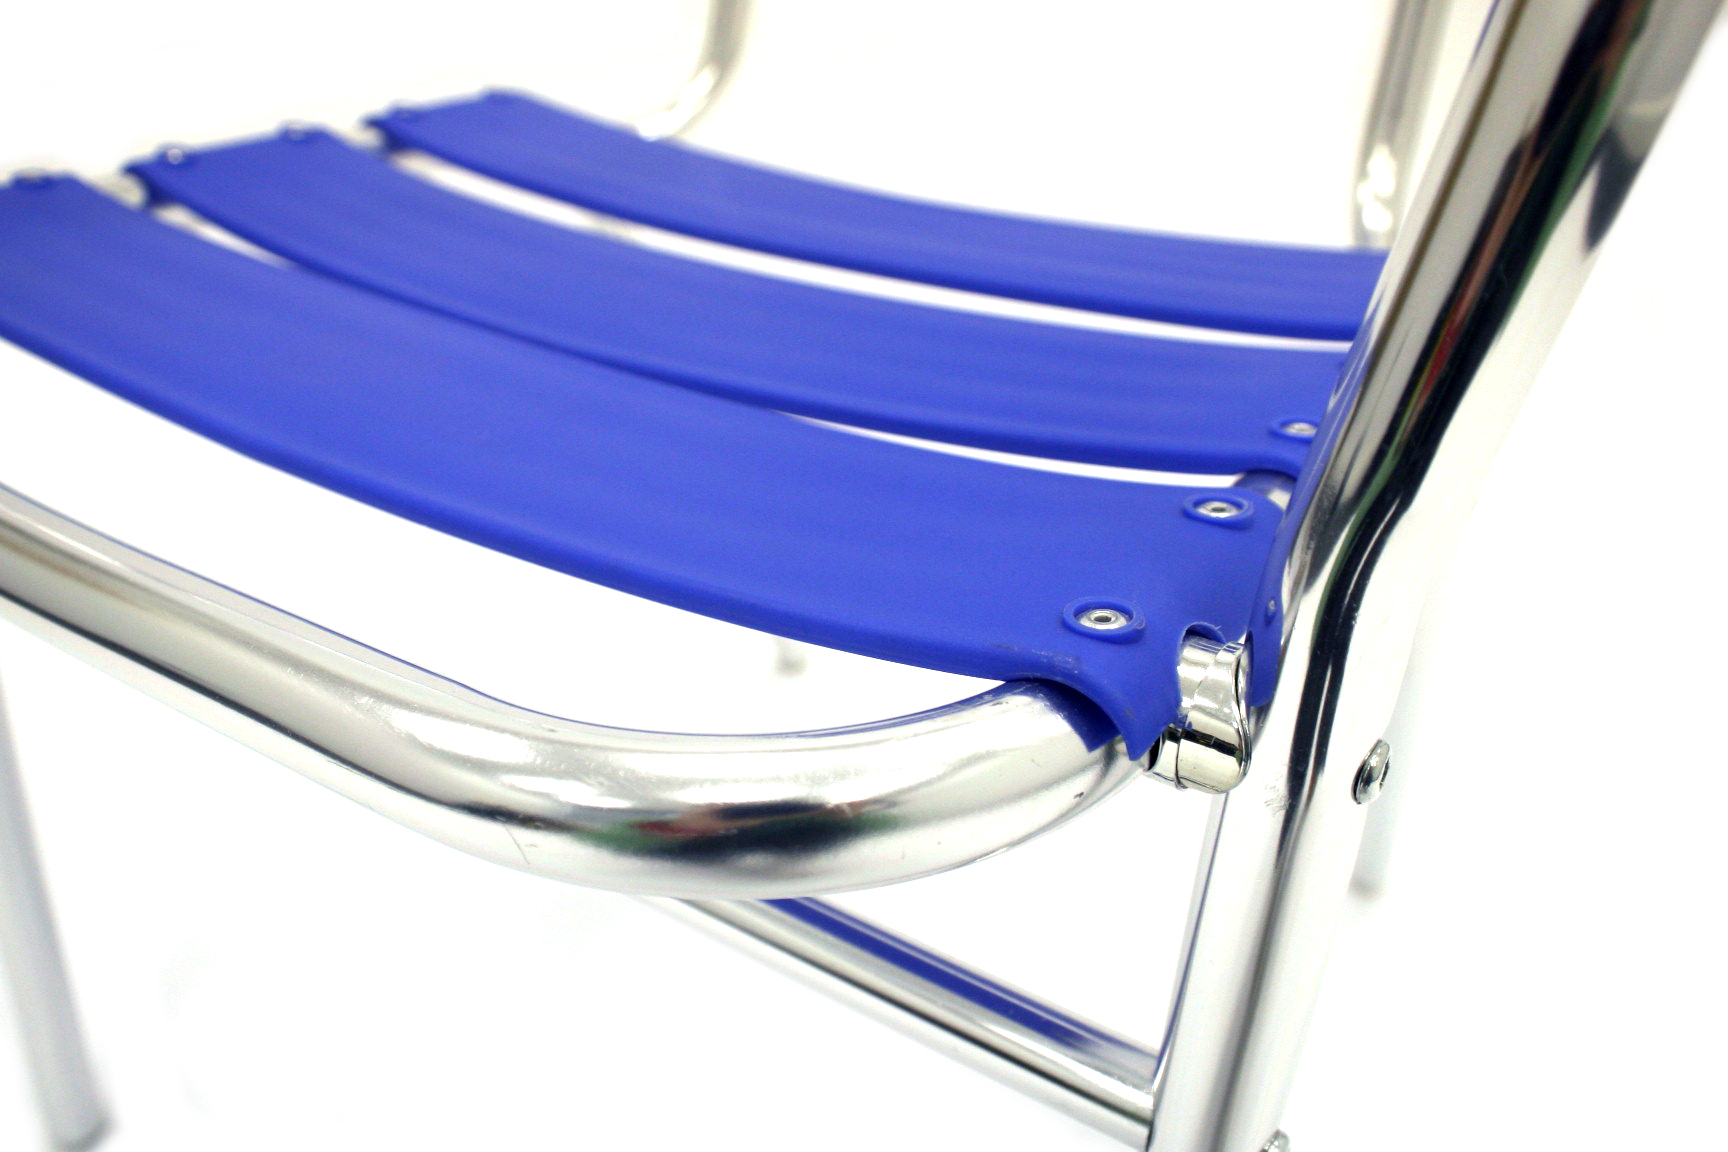 Lightweight tubular aluminium frame with a blue plastic seat & back - BE Event Hire